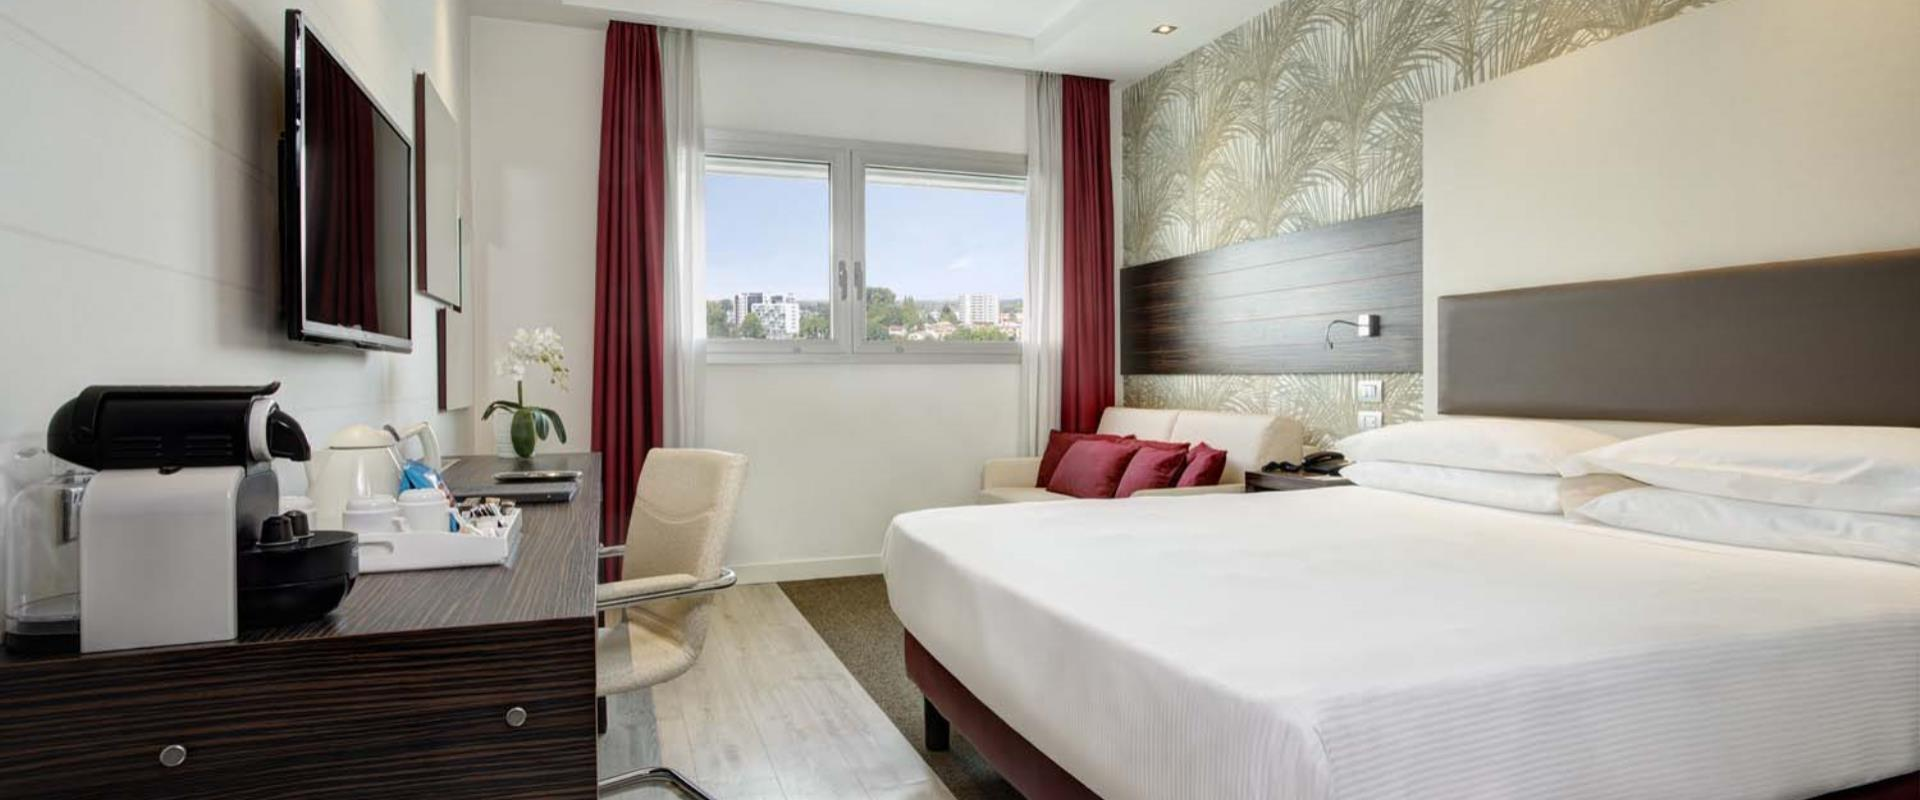 BW Plus Quid Hotel Venice - Rooms - Executive with sofa bed